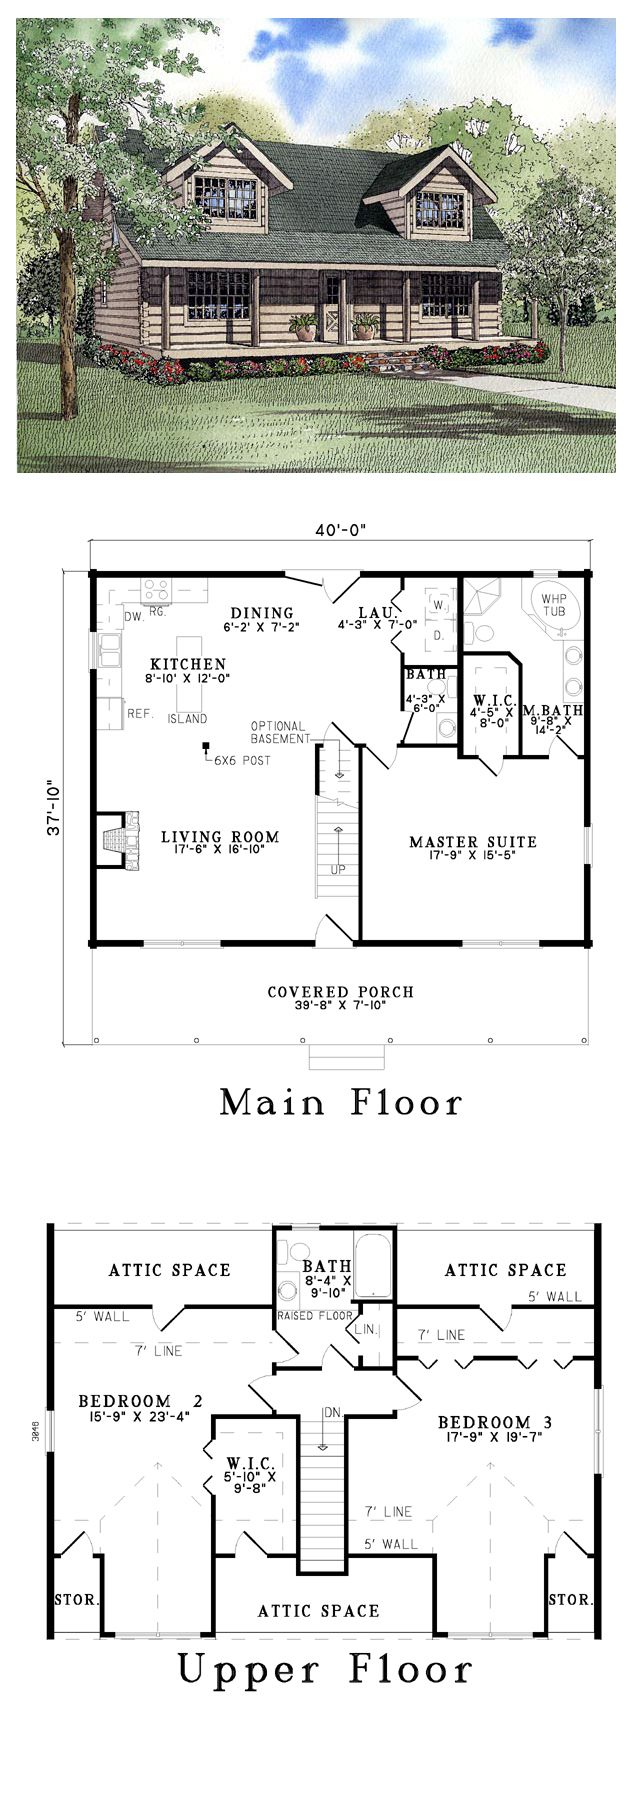 Log house plan 61151 total living area 2043 sq ft 3 for Country log home plans